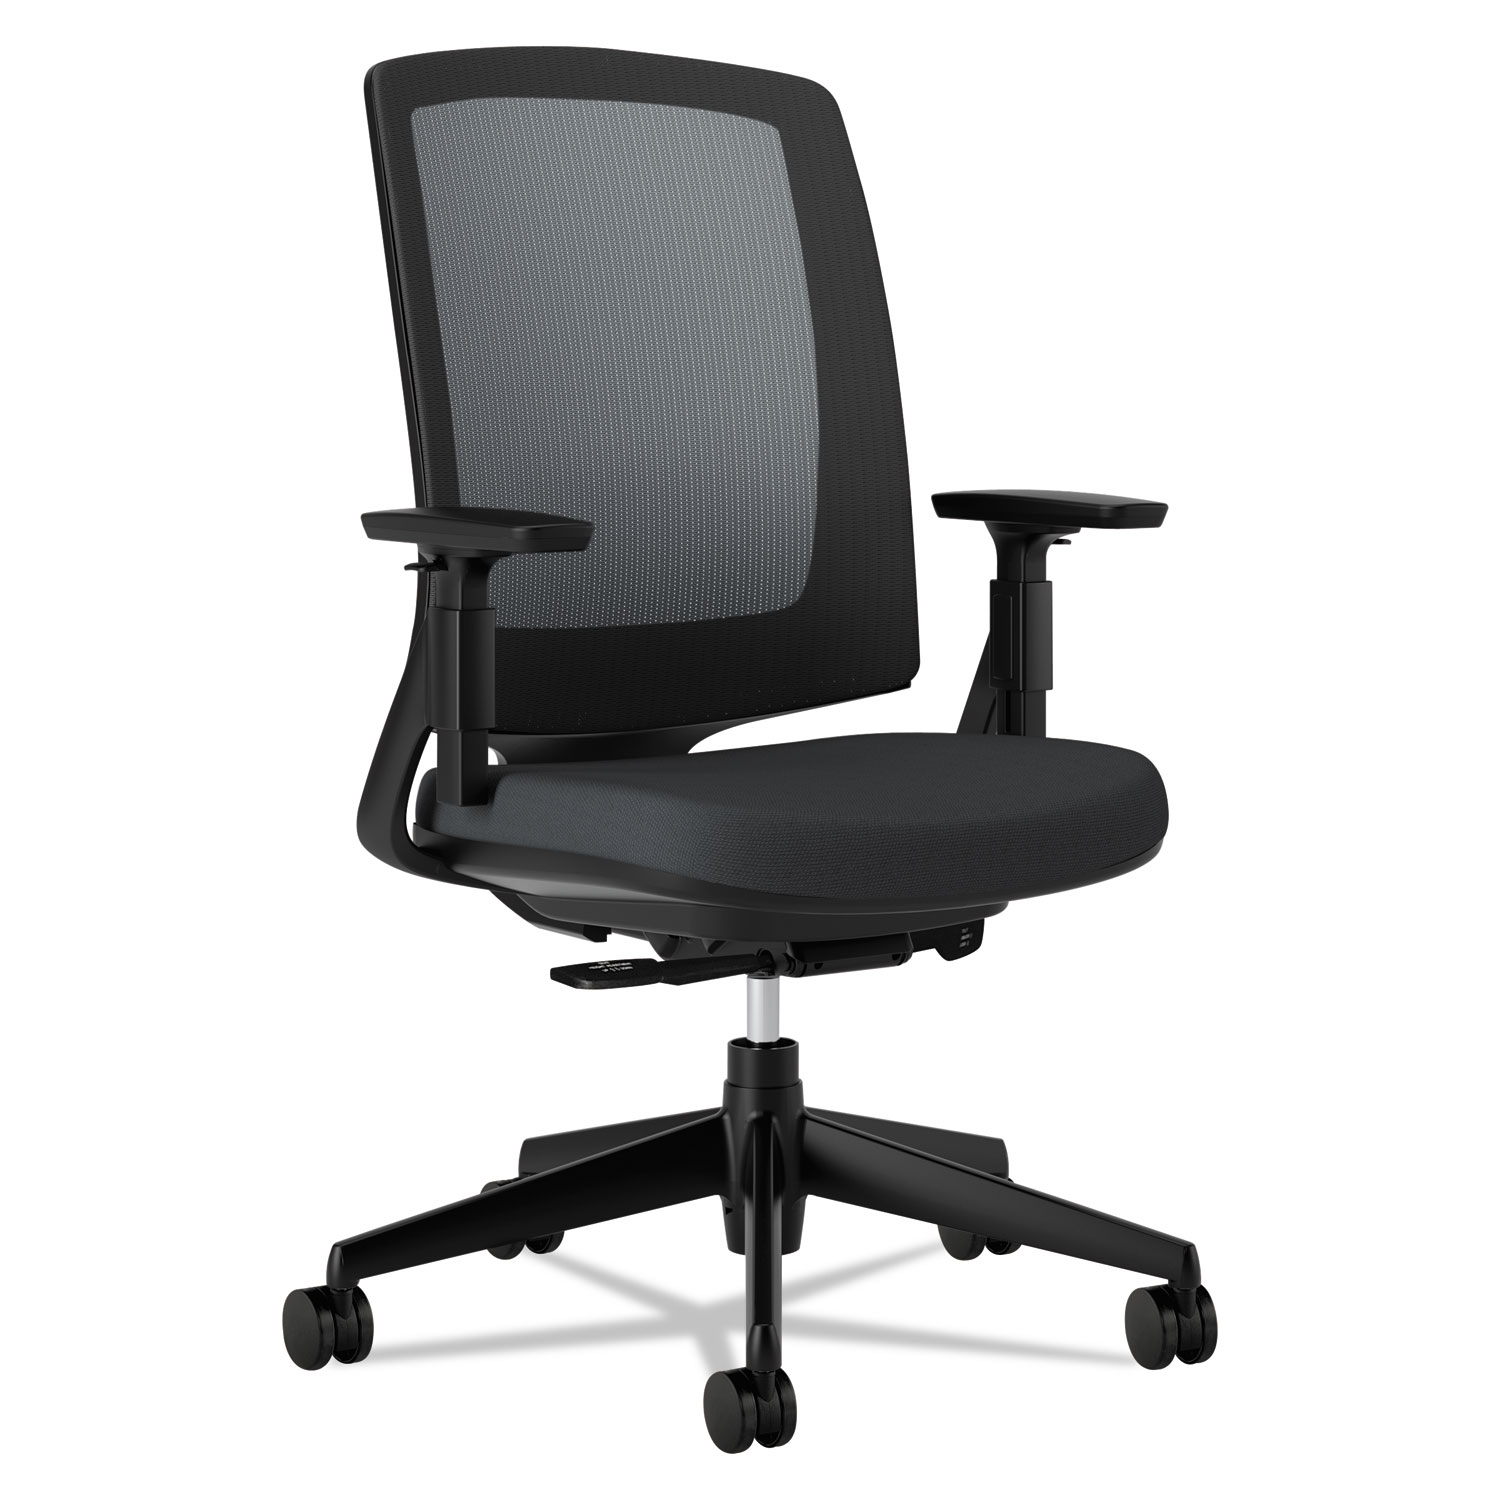 Work Chair Lota Series Mesh Mid Back Work Chair By Hon Hon2281va10t